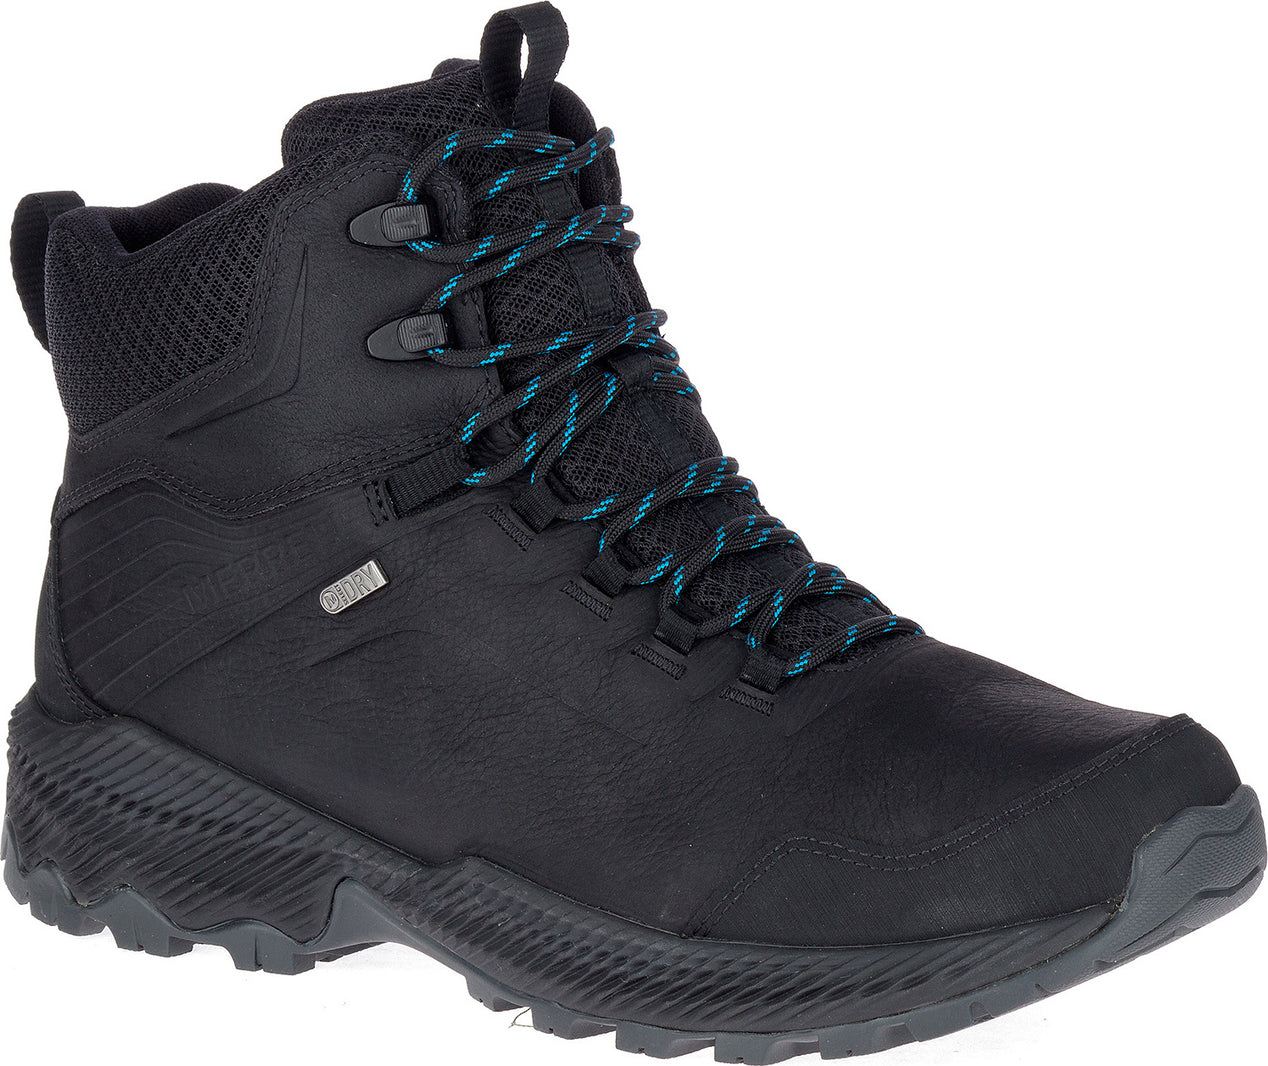 89310ffc4c Merrell Forestbound Mid Waterproof Hiking Boots - Men's